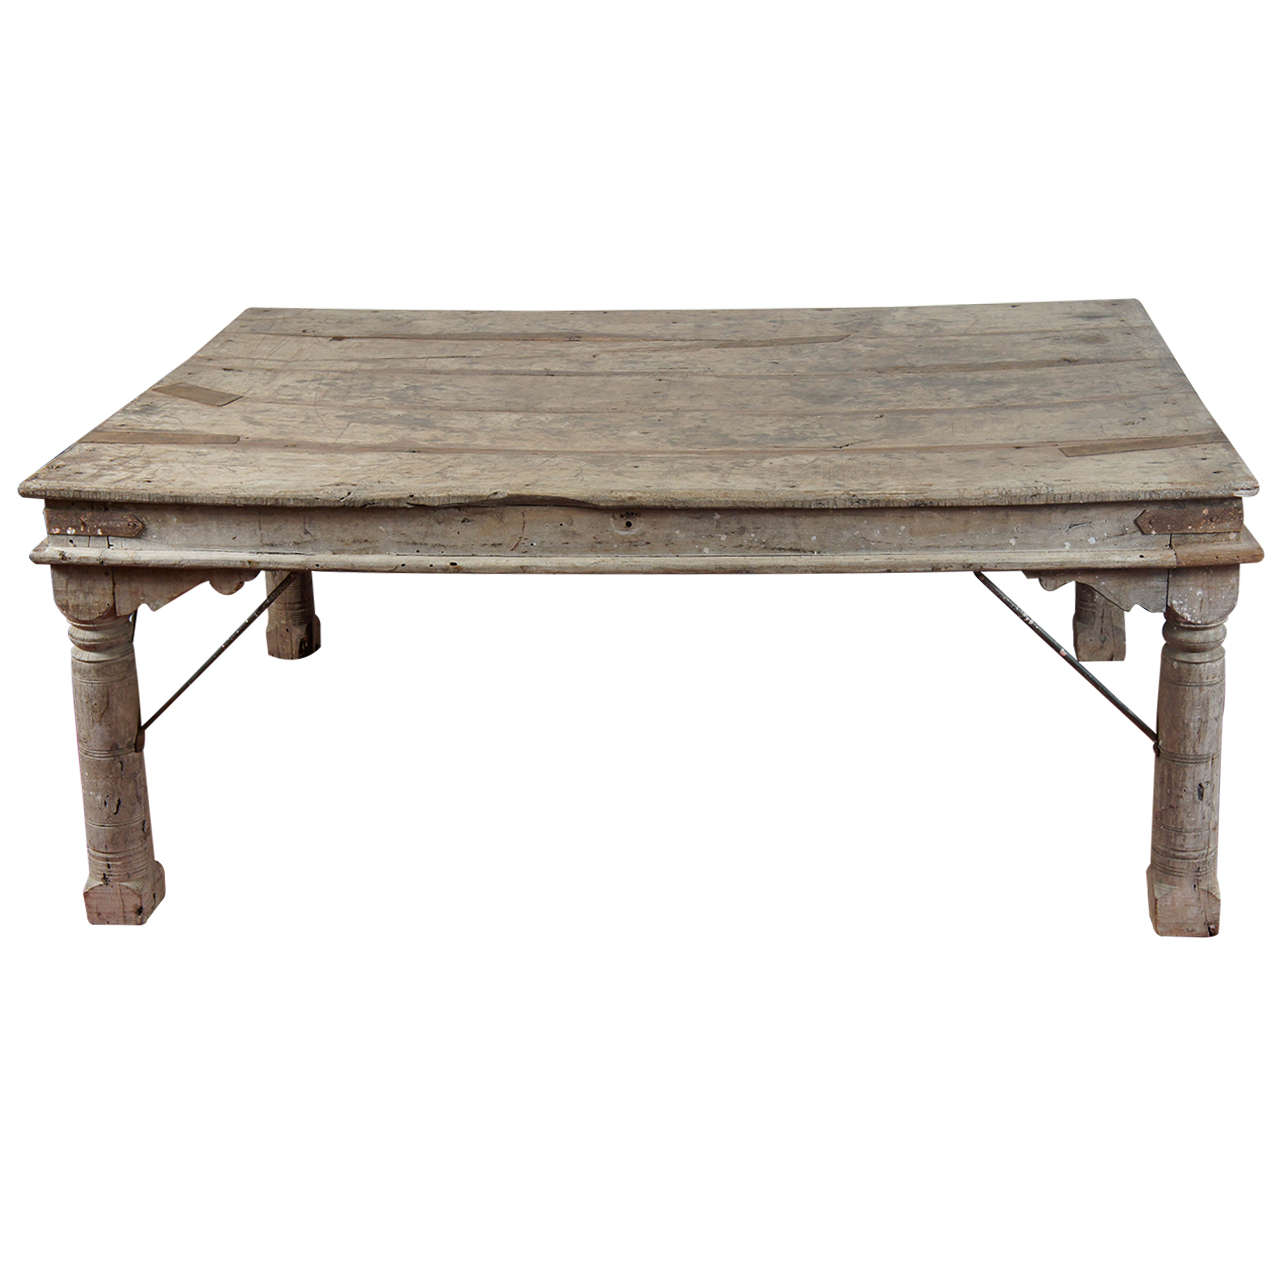 Indian Plank Teak Dining Table At 1stdibs